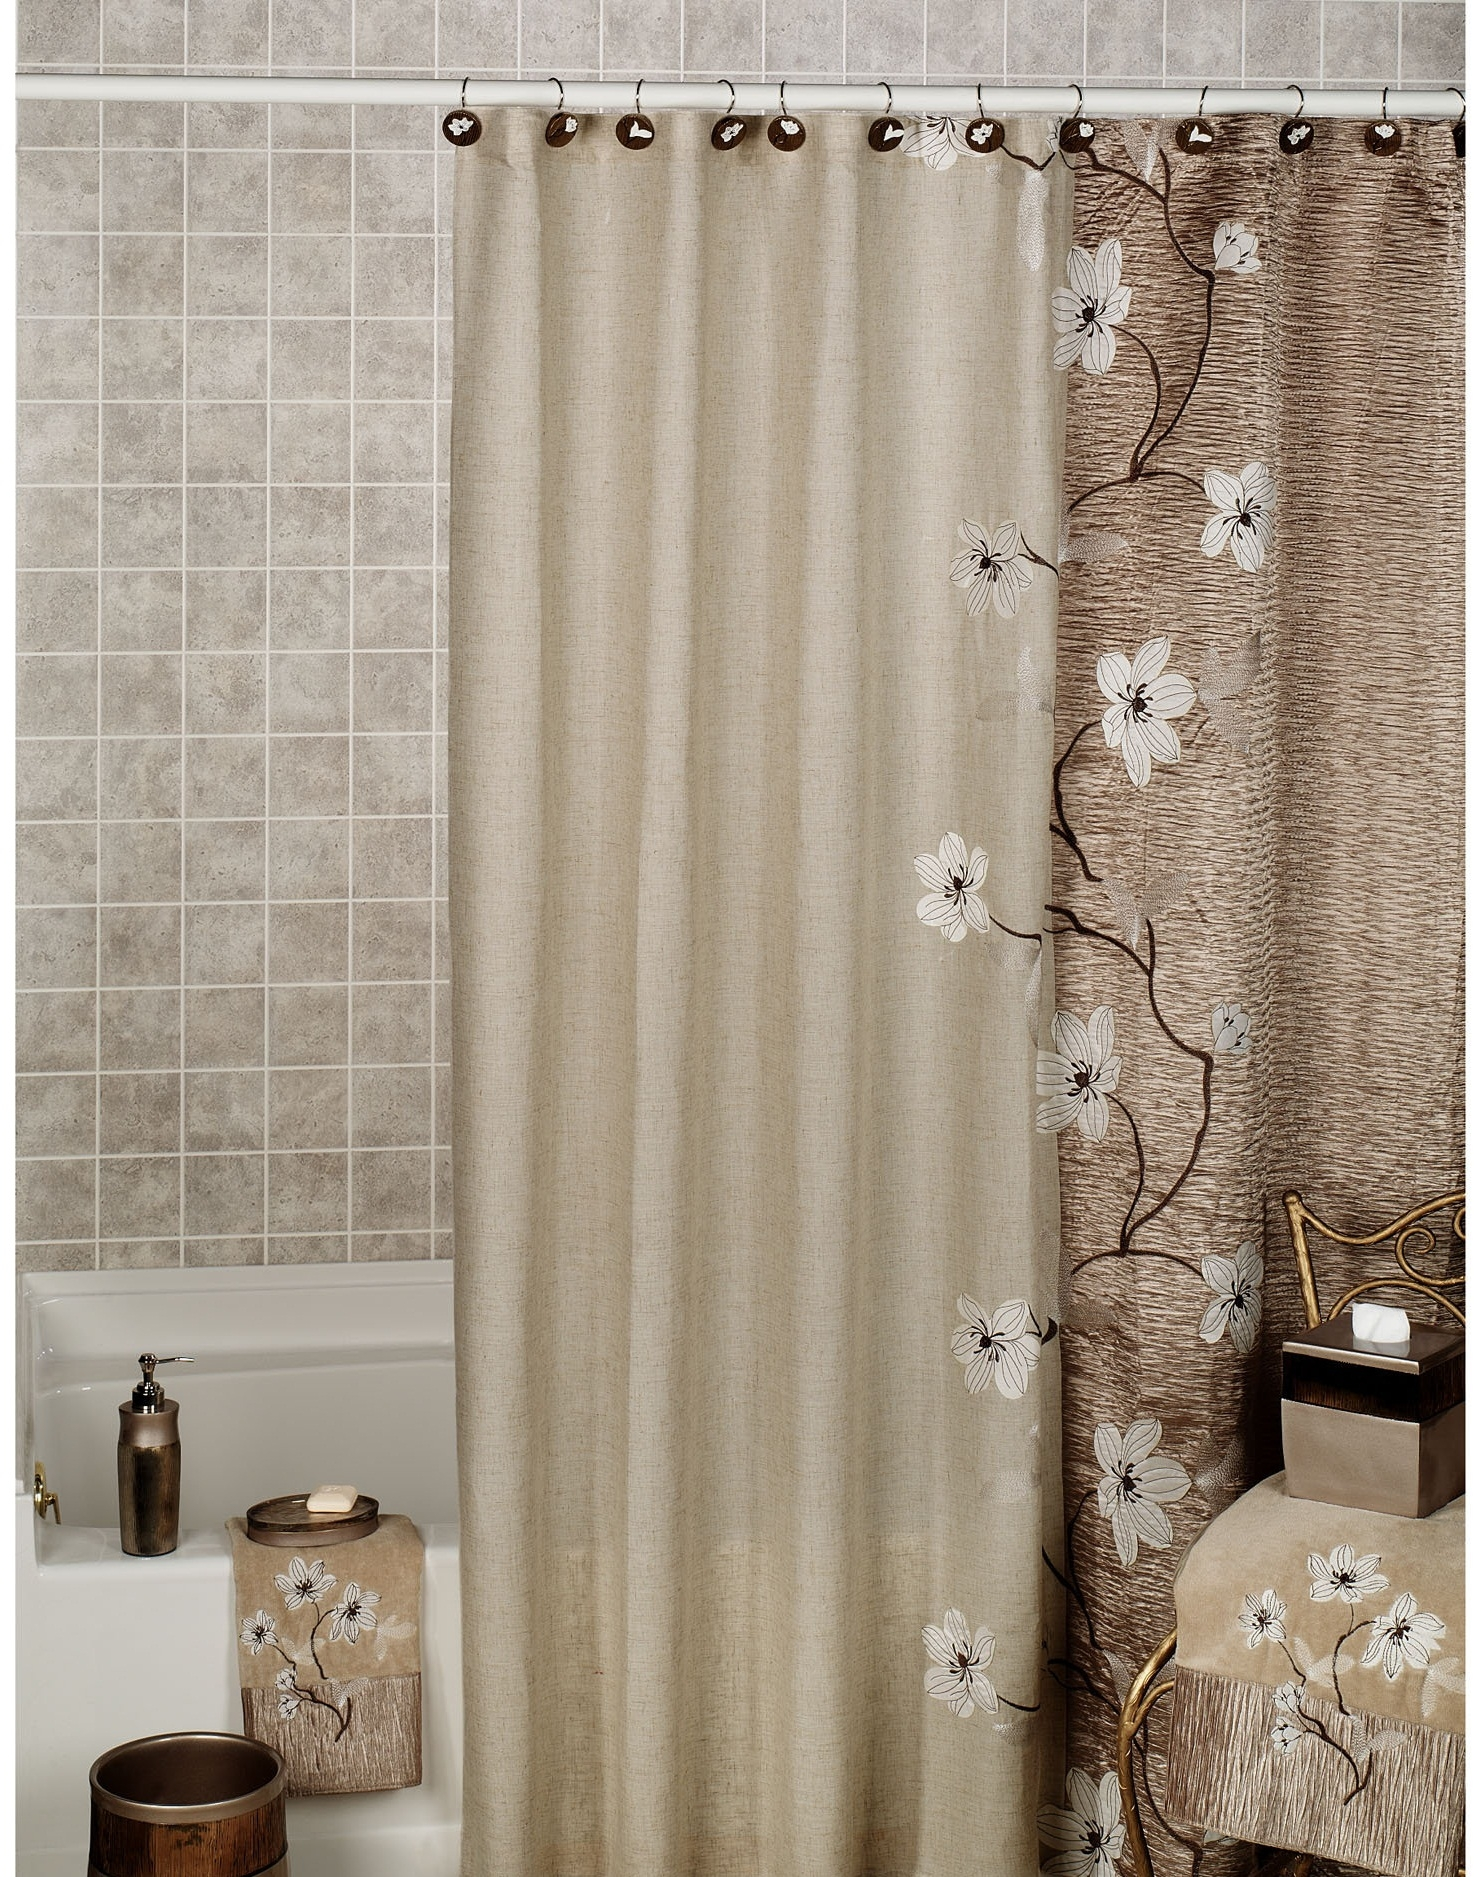 15 Collection of Extra Long Thermal Curtains  Curtain Ideas